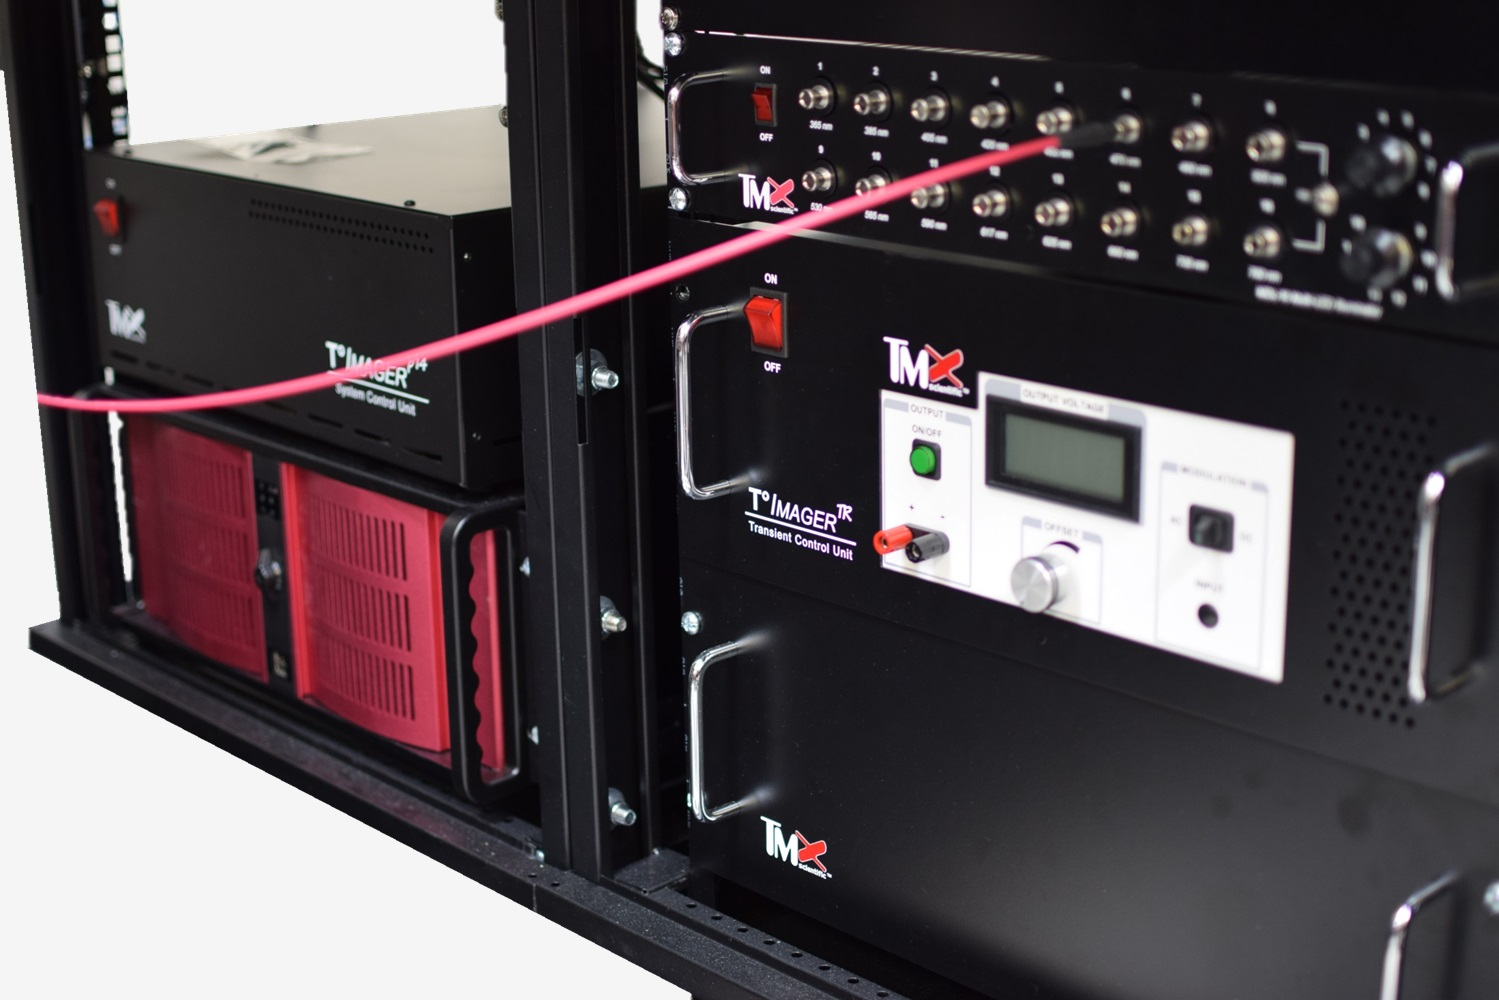 T°Imager Modular Design Contains All Units Within the System Rack Station